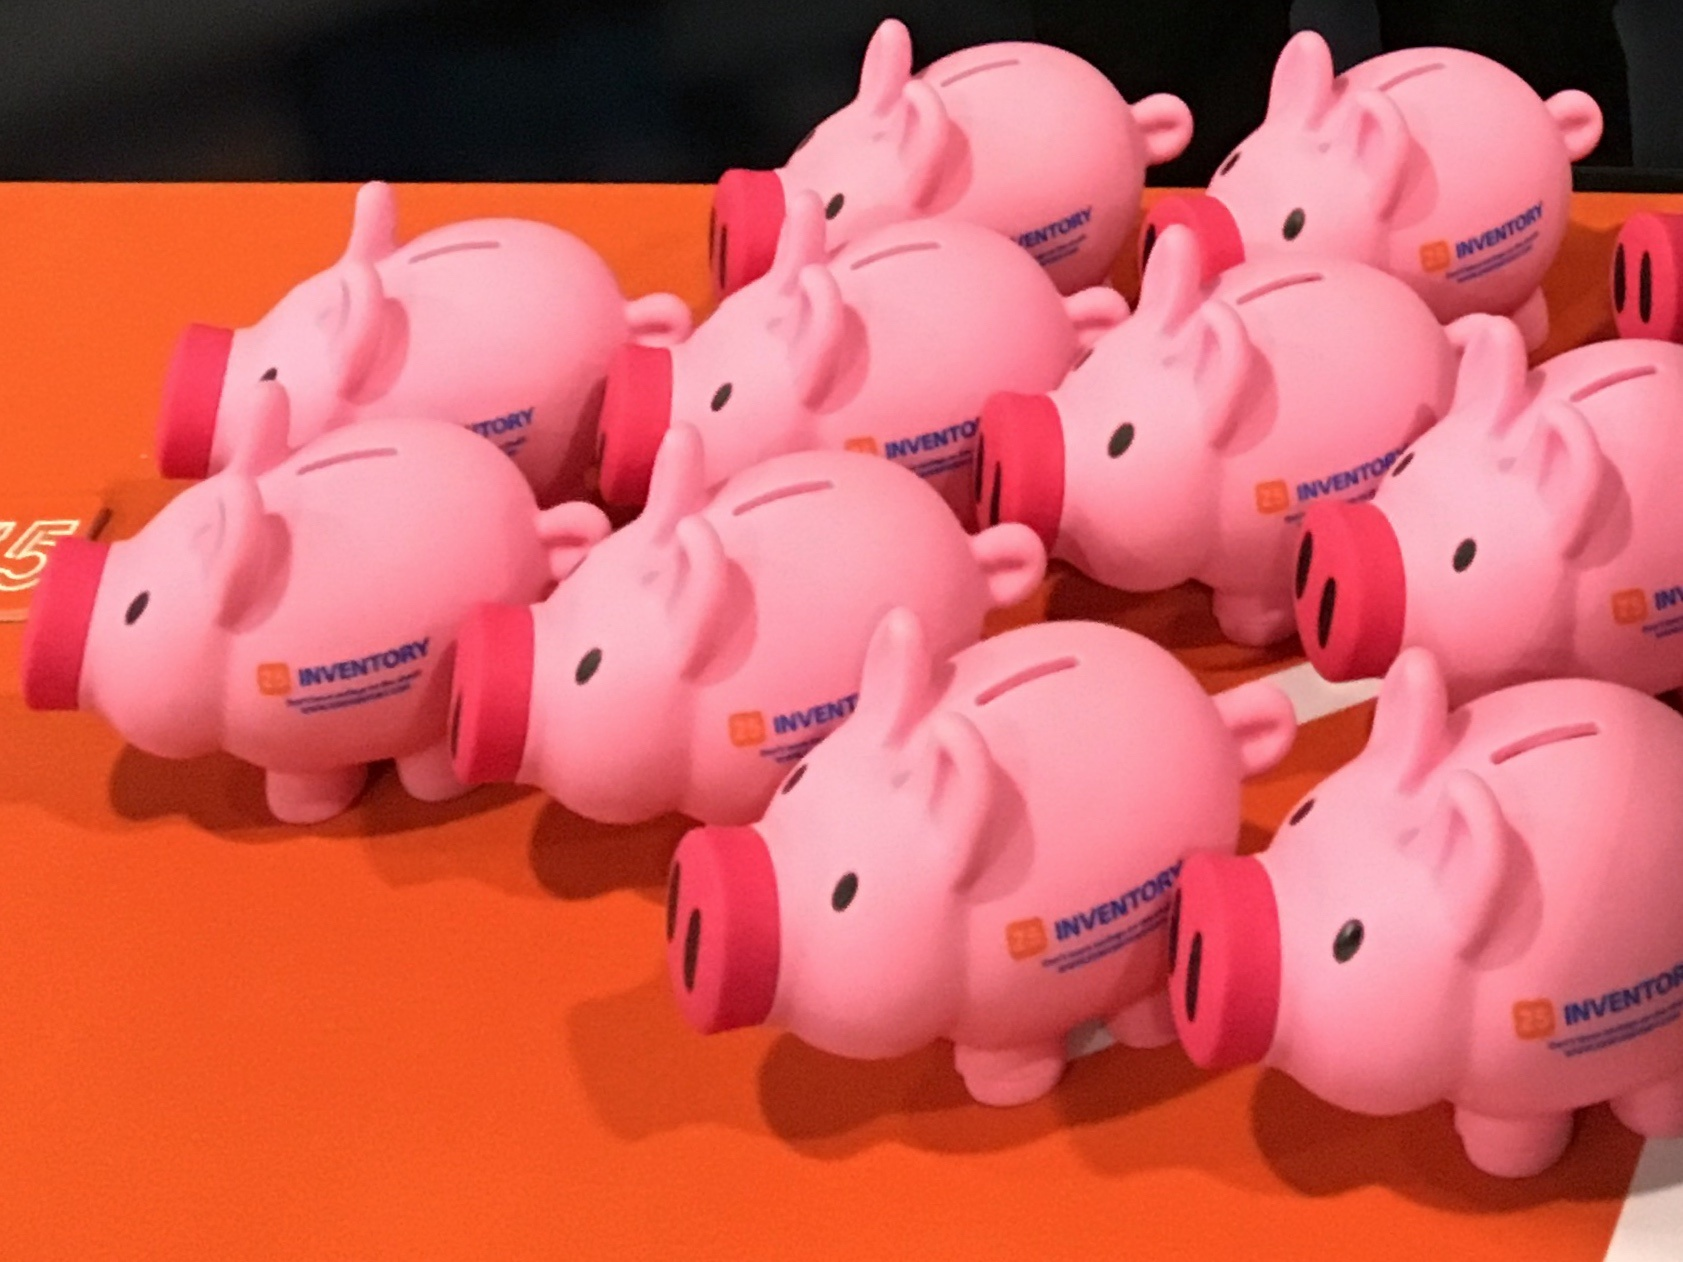 The Z5 Piggy Bank herd is moving out to AHRMM18!